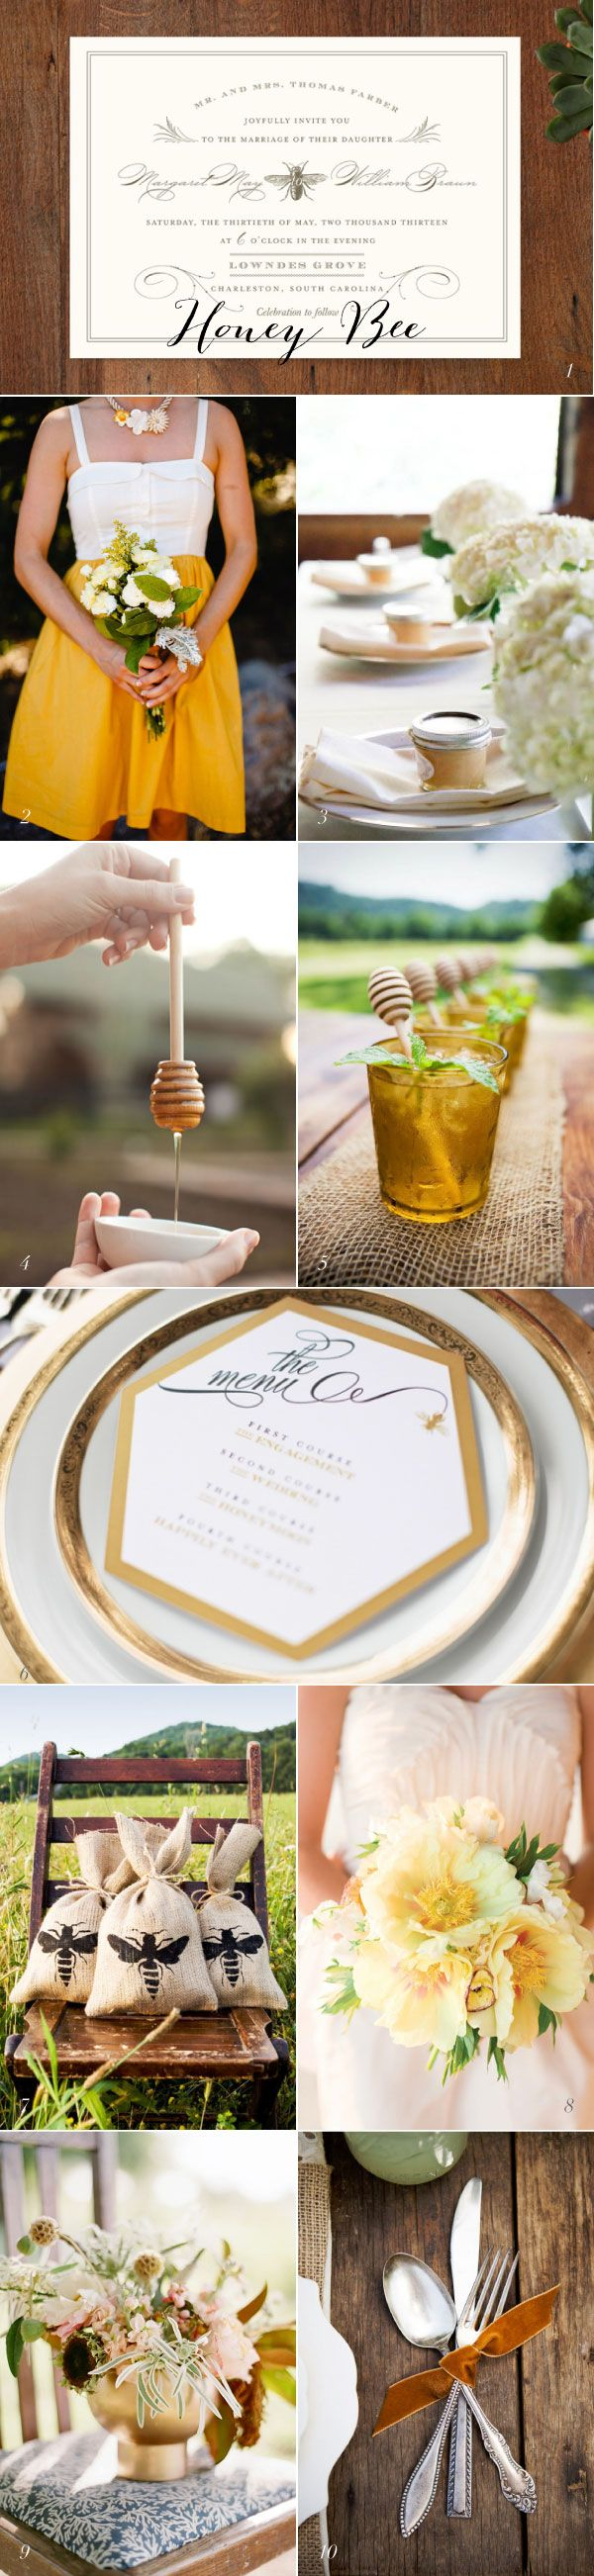 best inspo images on pinterest bees honey bees and baking center